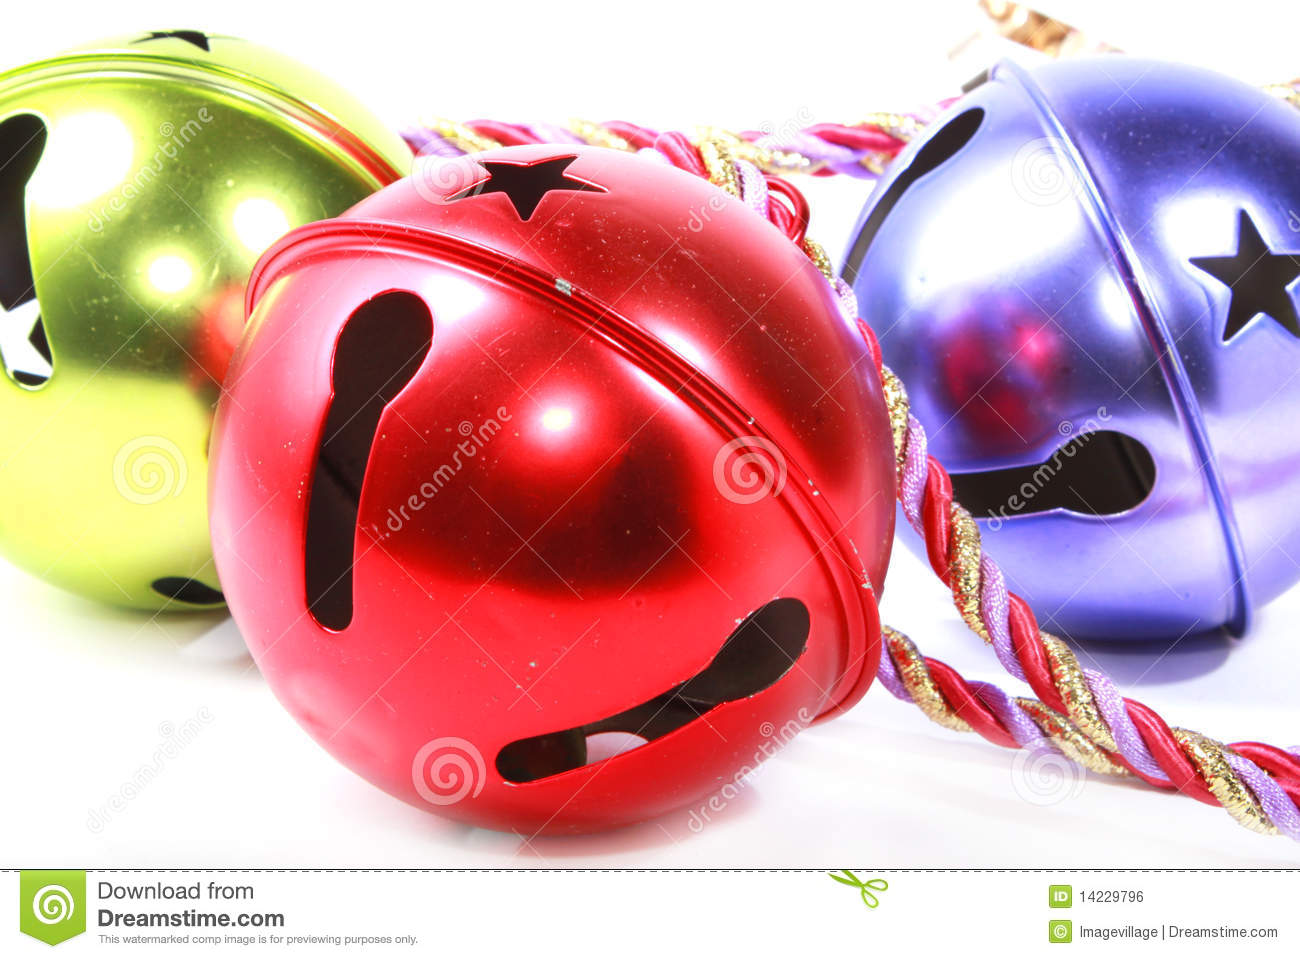 Christmas Jingle Bells Royalty Free Stock Image - Image: 14229796